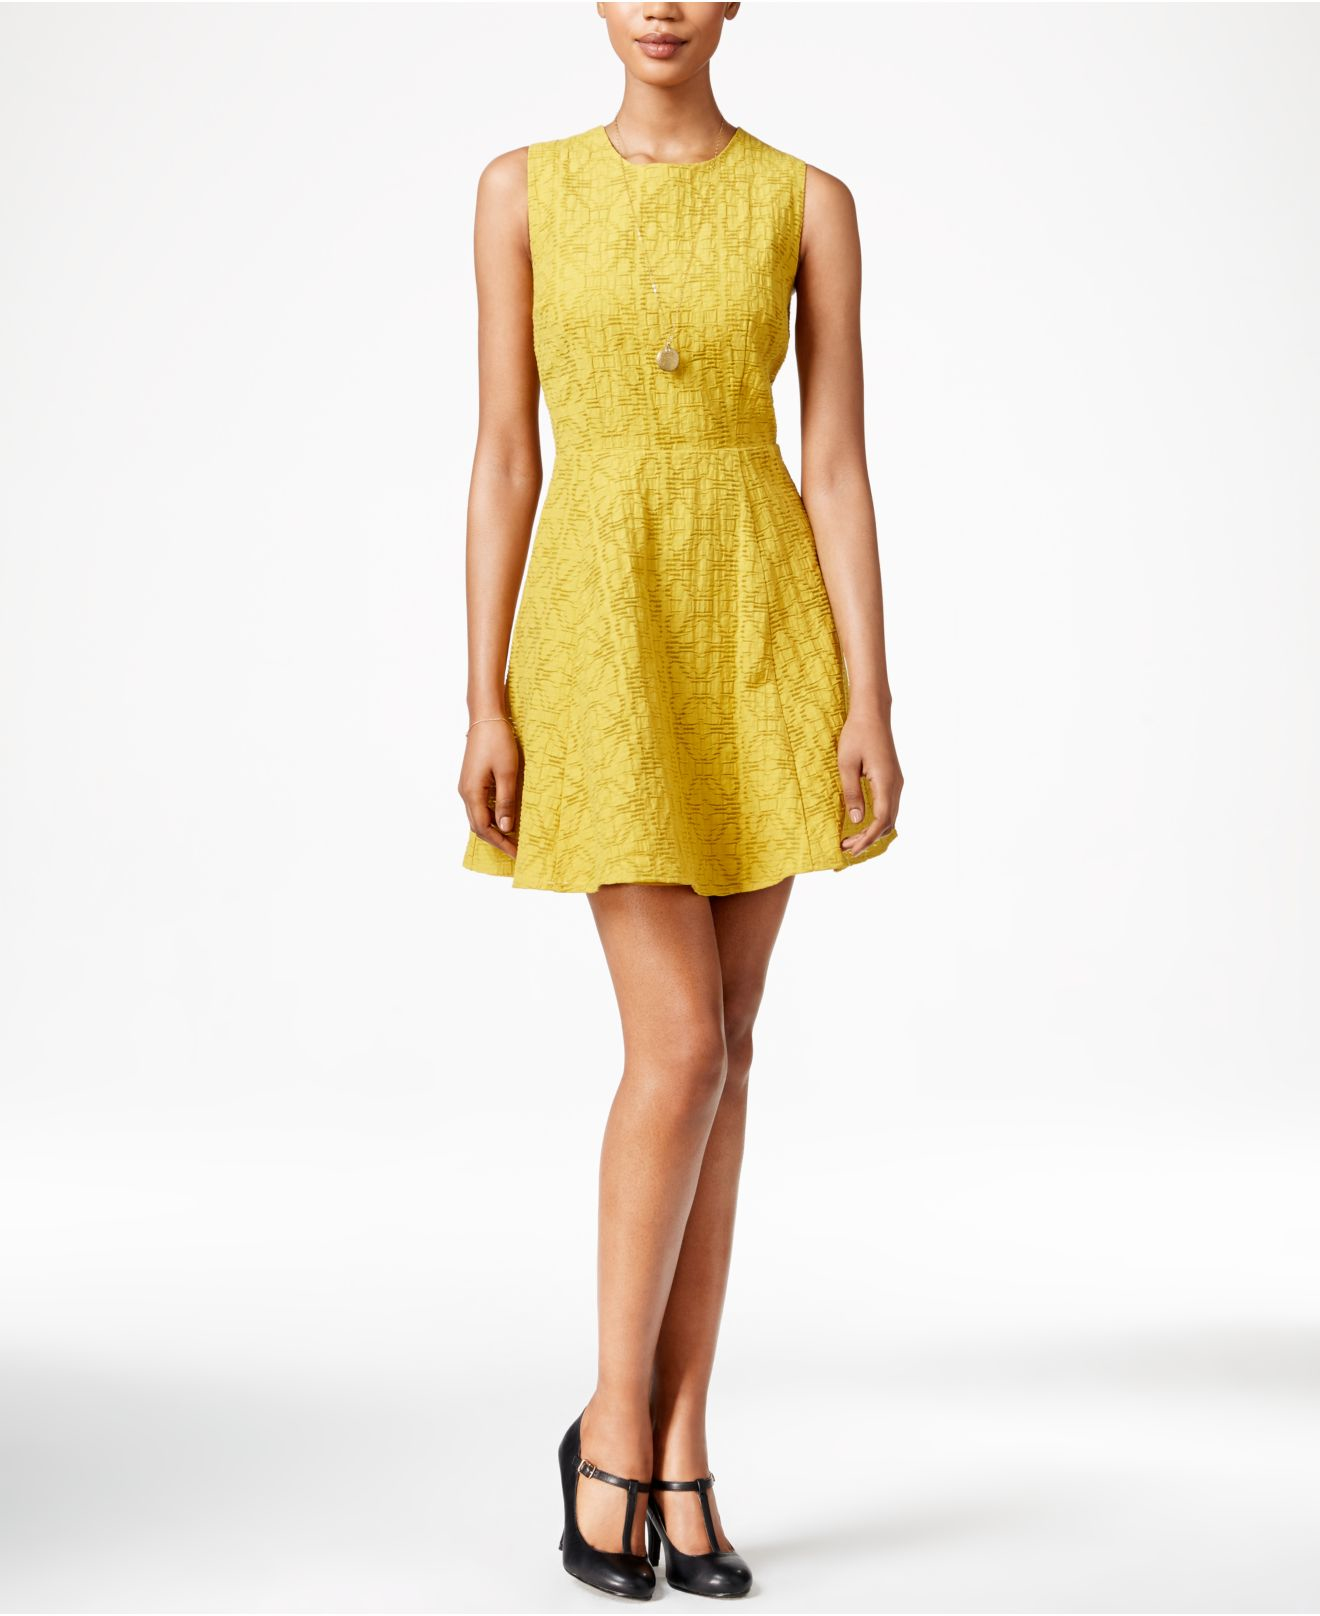 Beautiful Yellow Dress Macys Images - Plus Size Clothing - bongartz.us